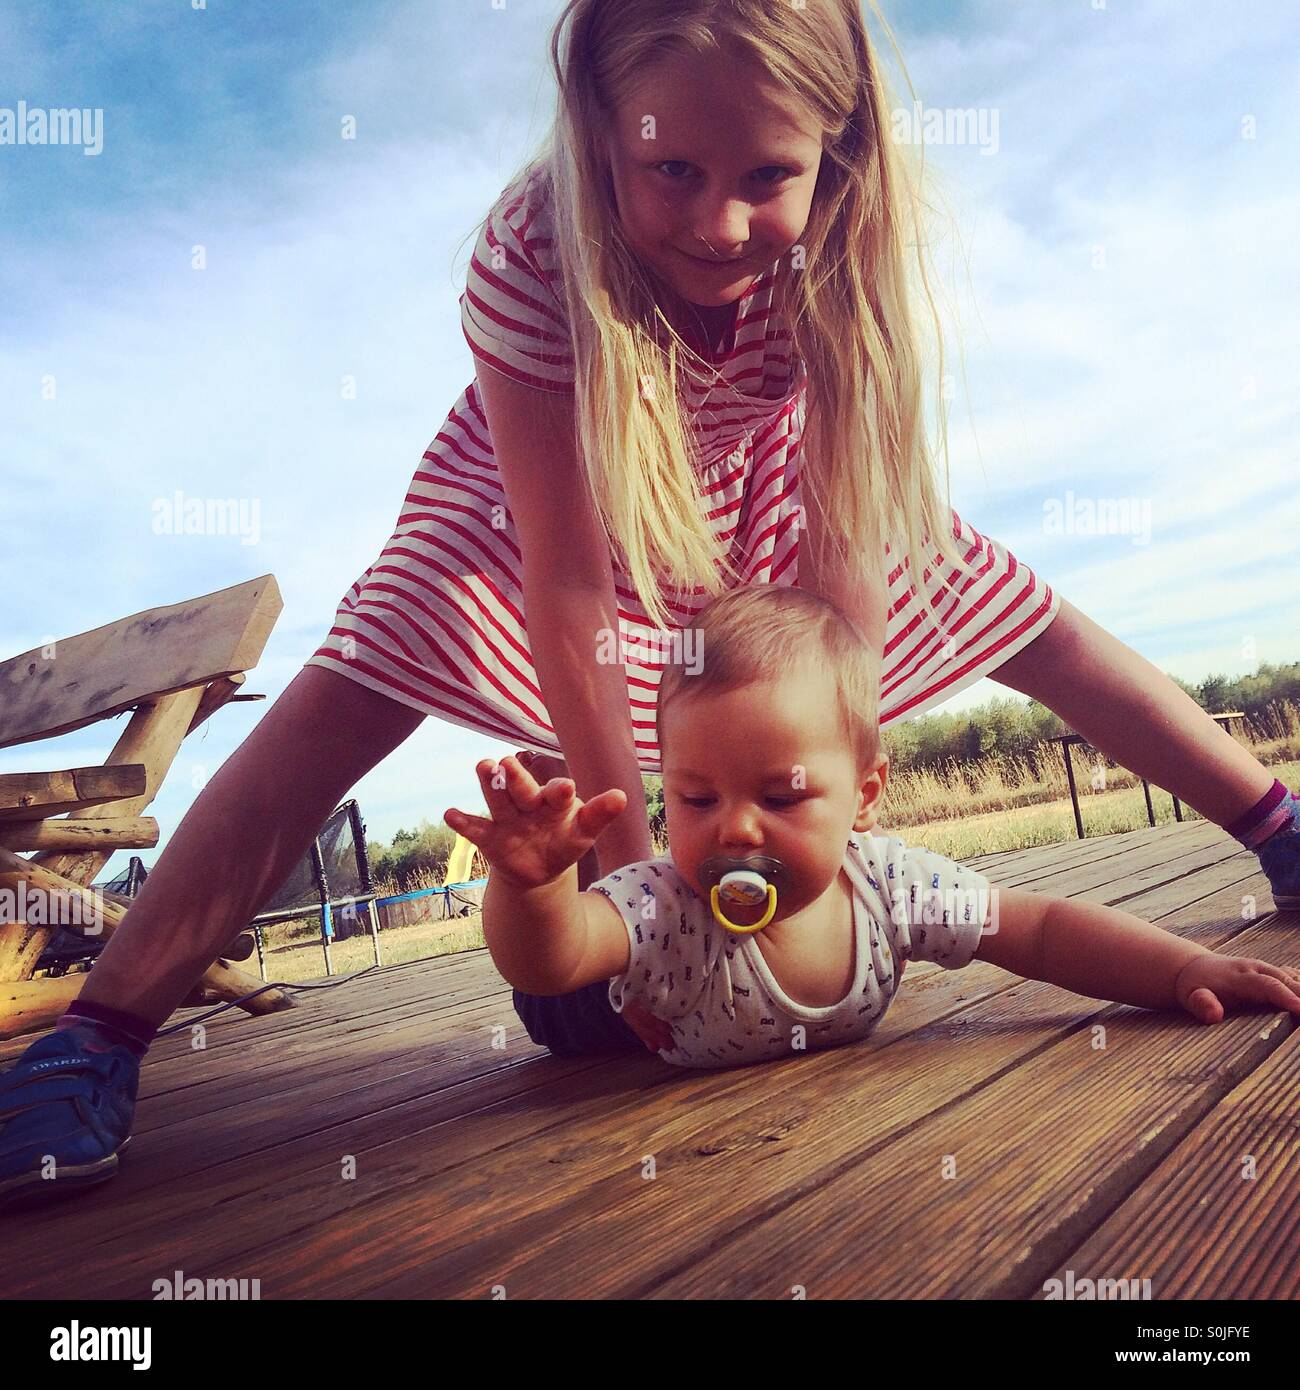 A blonde dressed in a red and white striped dress girl watching over and holding her baby brother who is learning - Stock Image